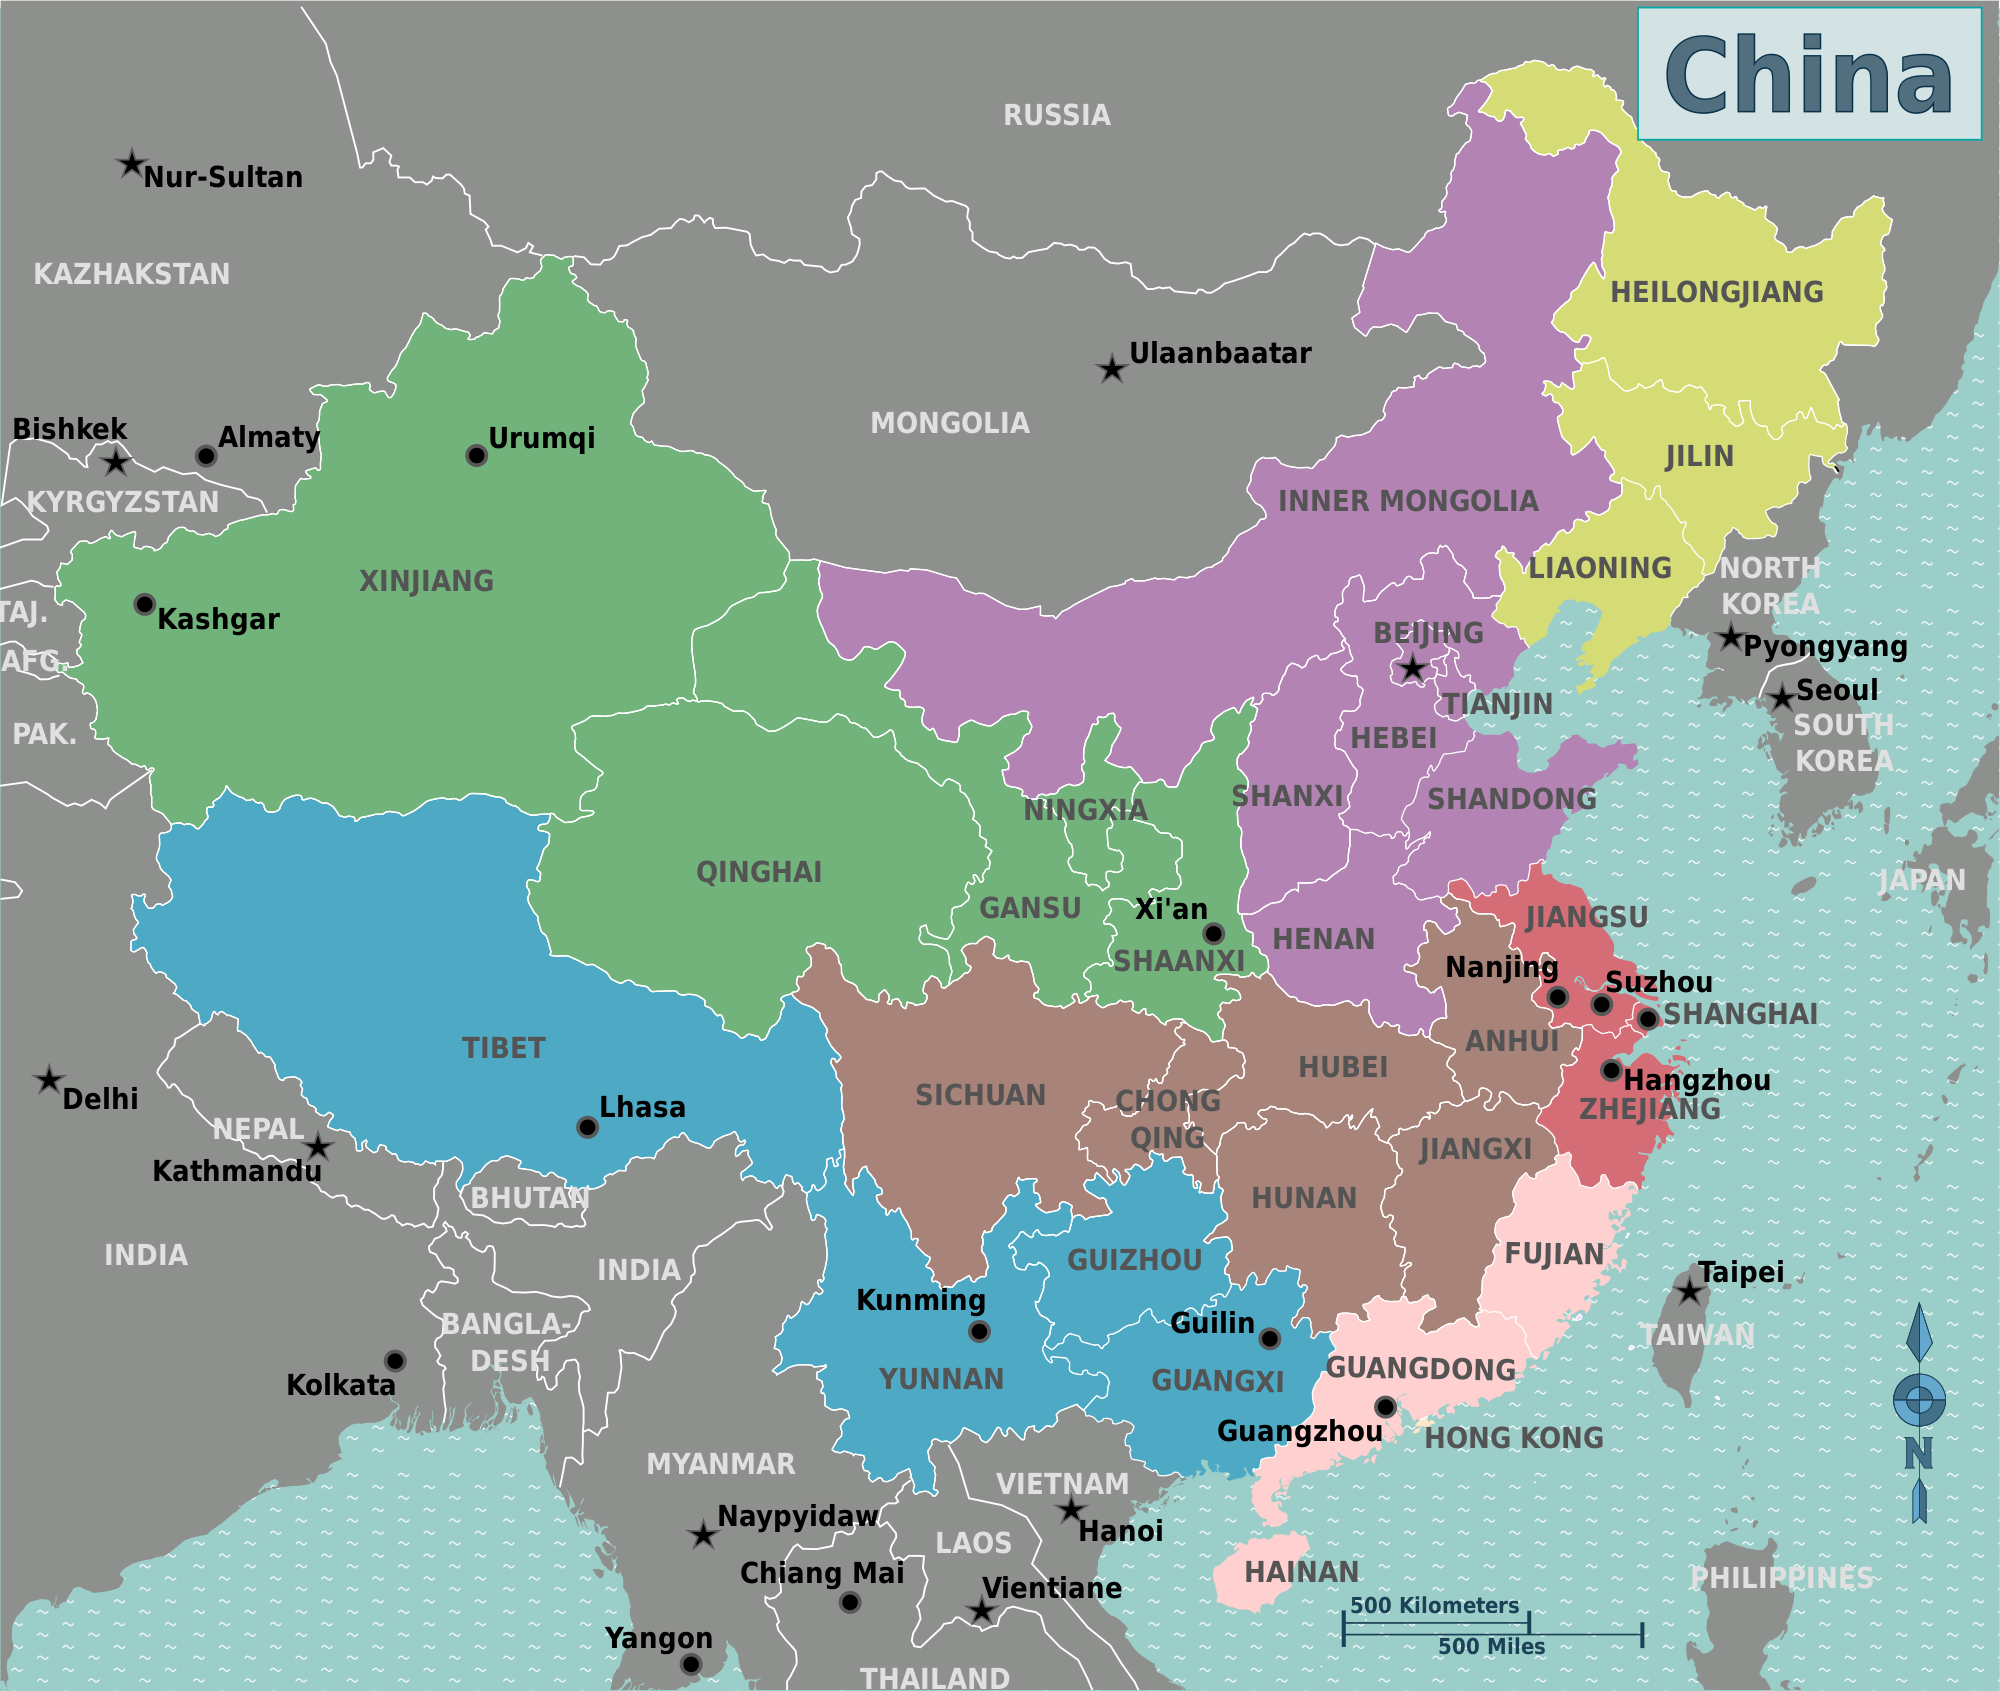 Map Of China Cities In English.File Map Of China En Png Wikimedia Commons